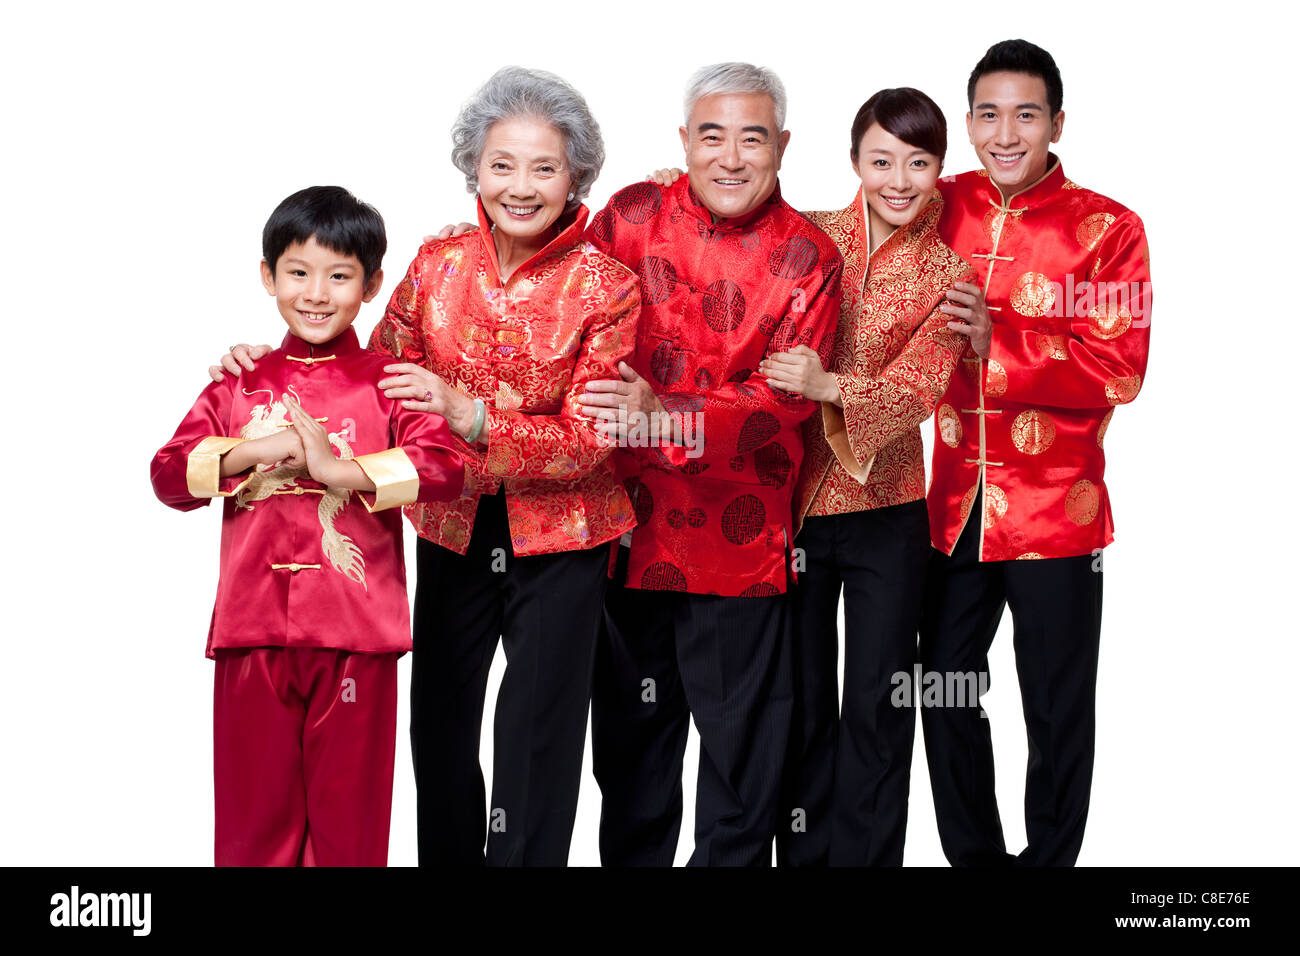 Family dressed in traditional clothing celebrating chinese for Traditional photos